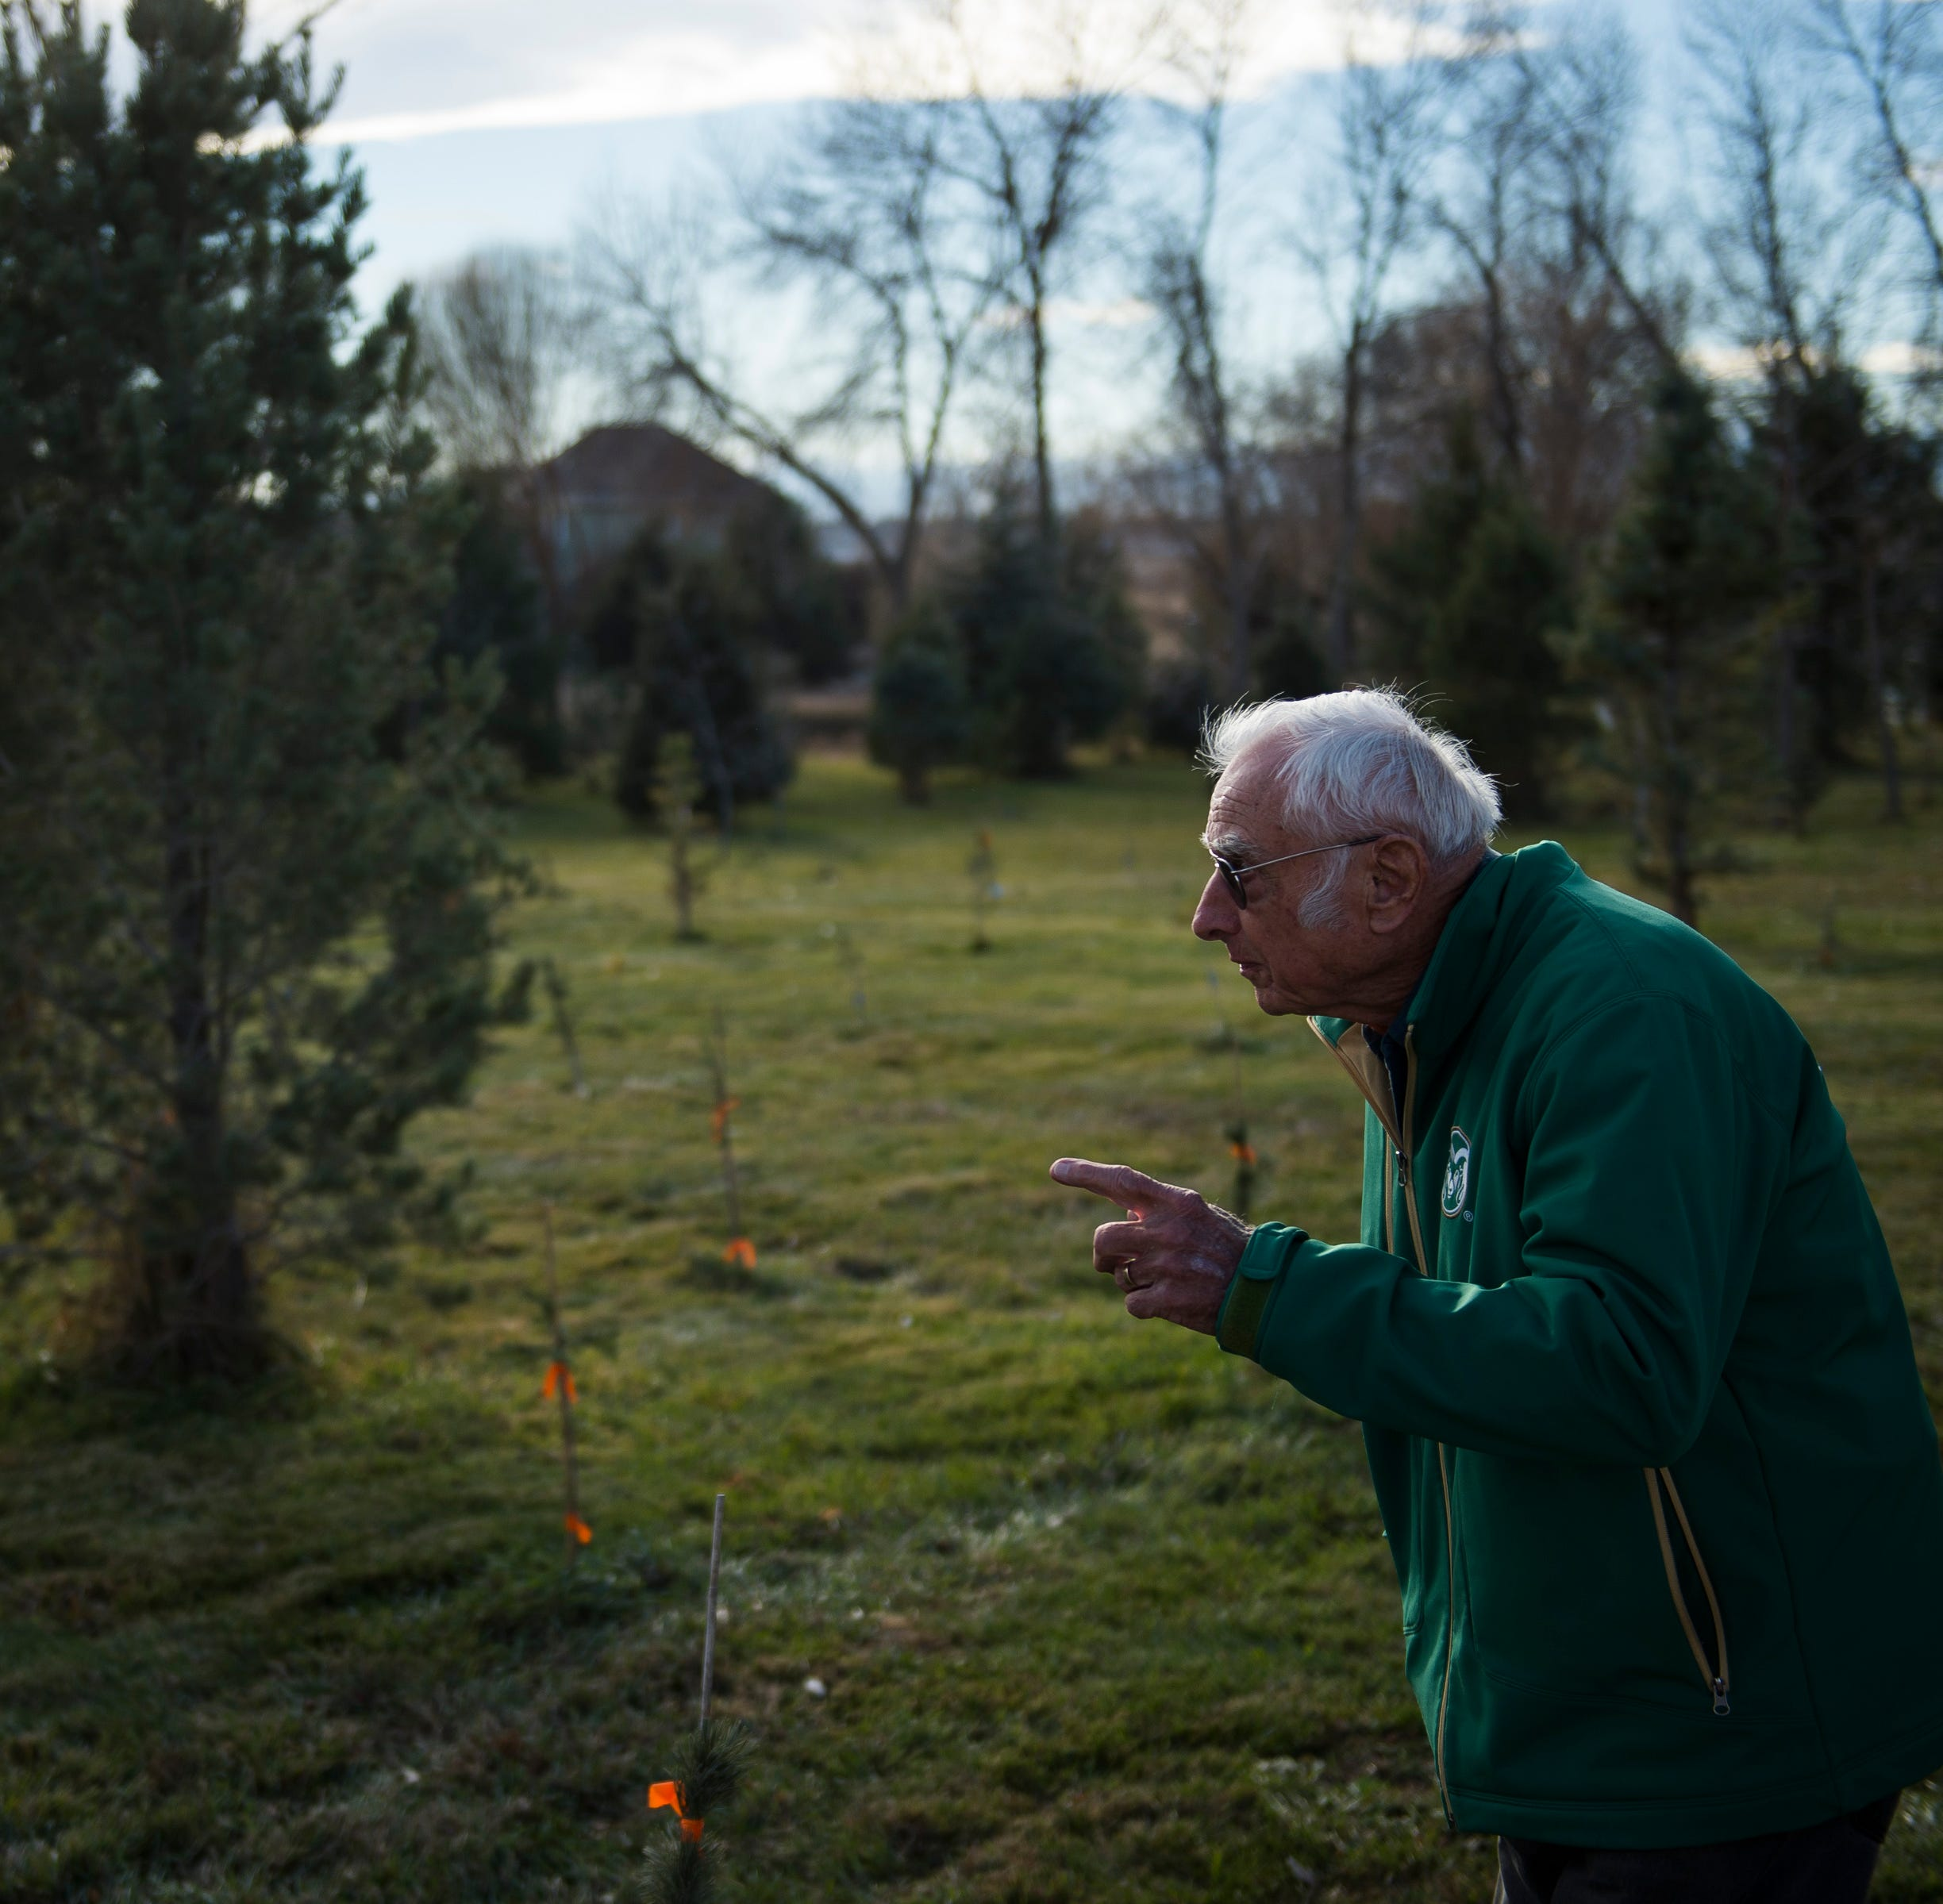 After 30 years, a beloved Windsor farm has sold its last Christmas tree